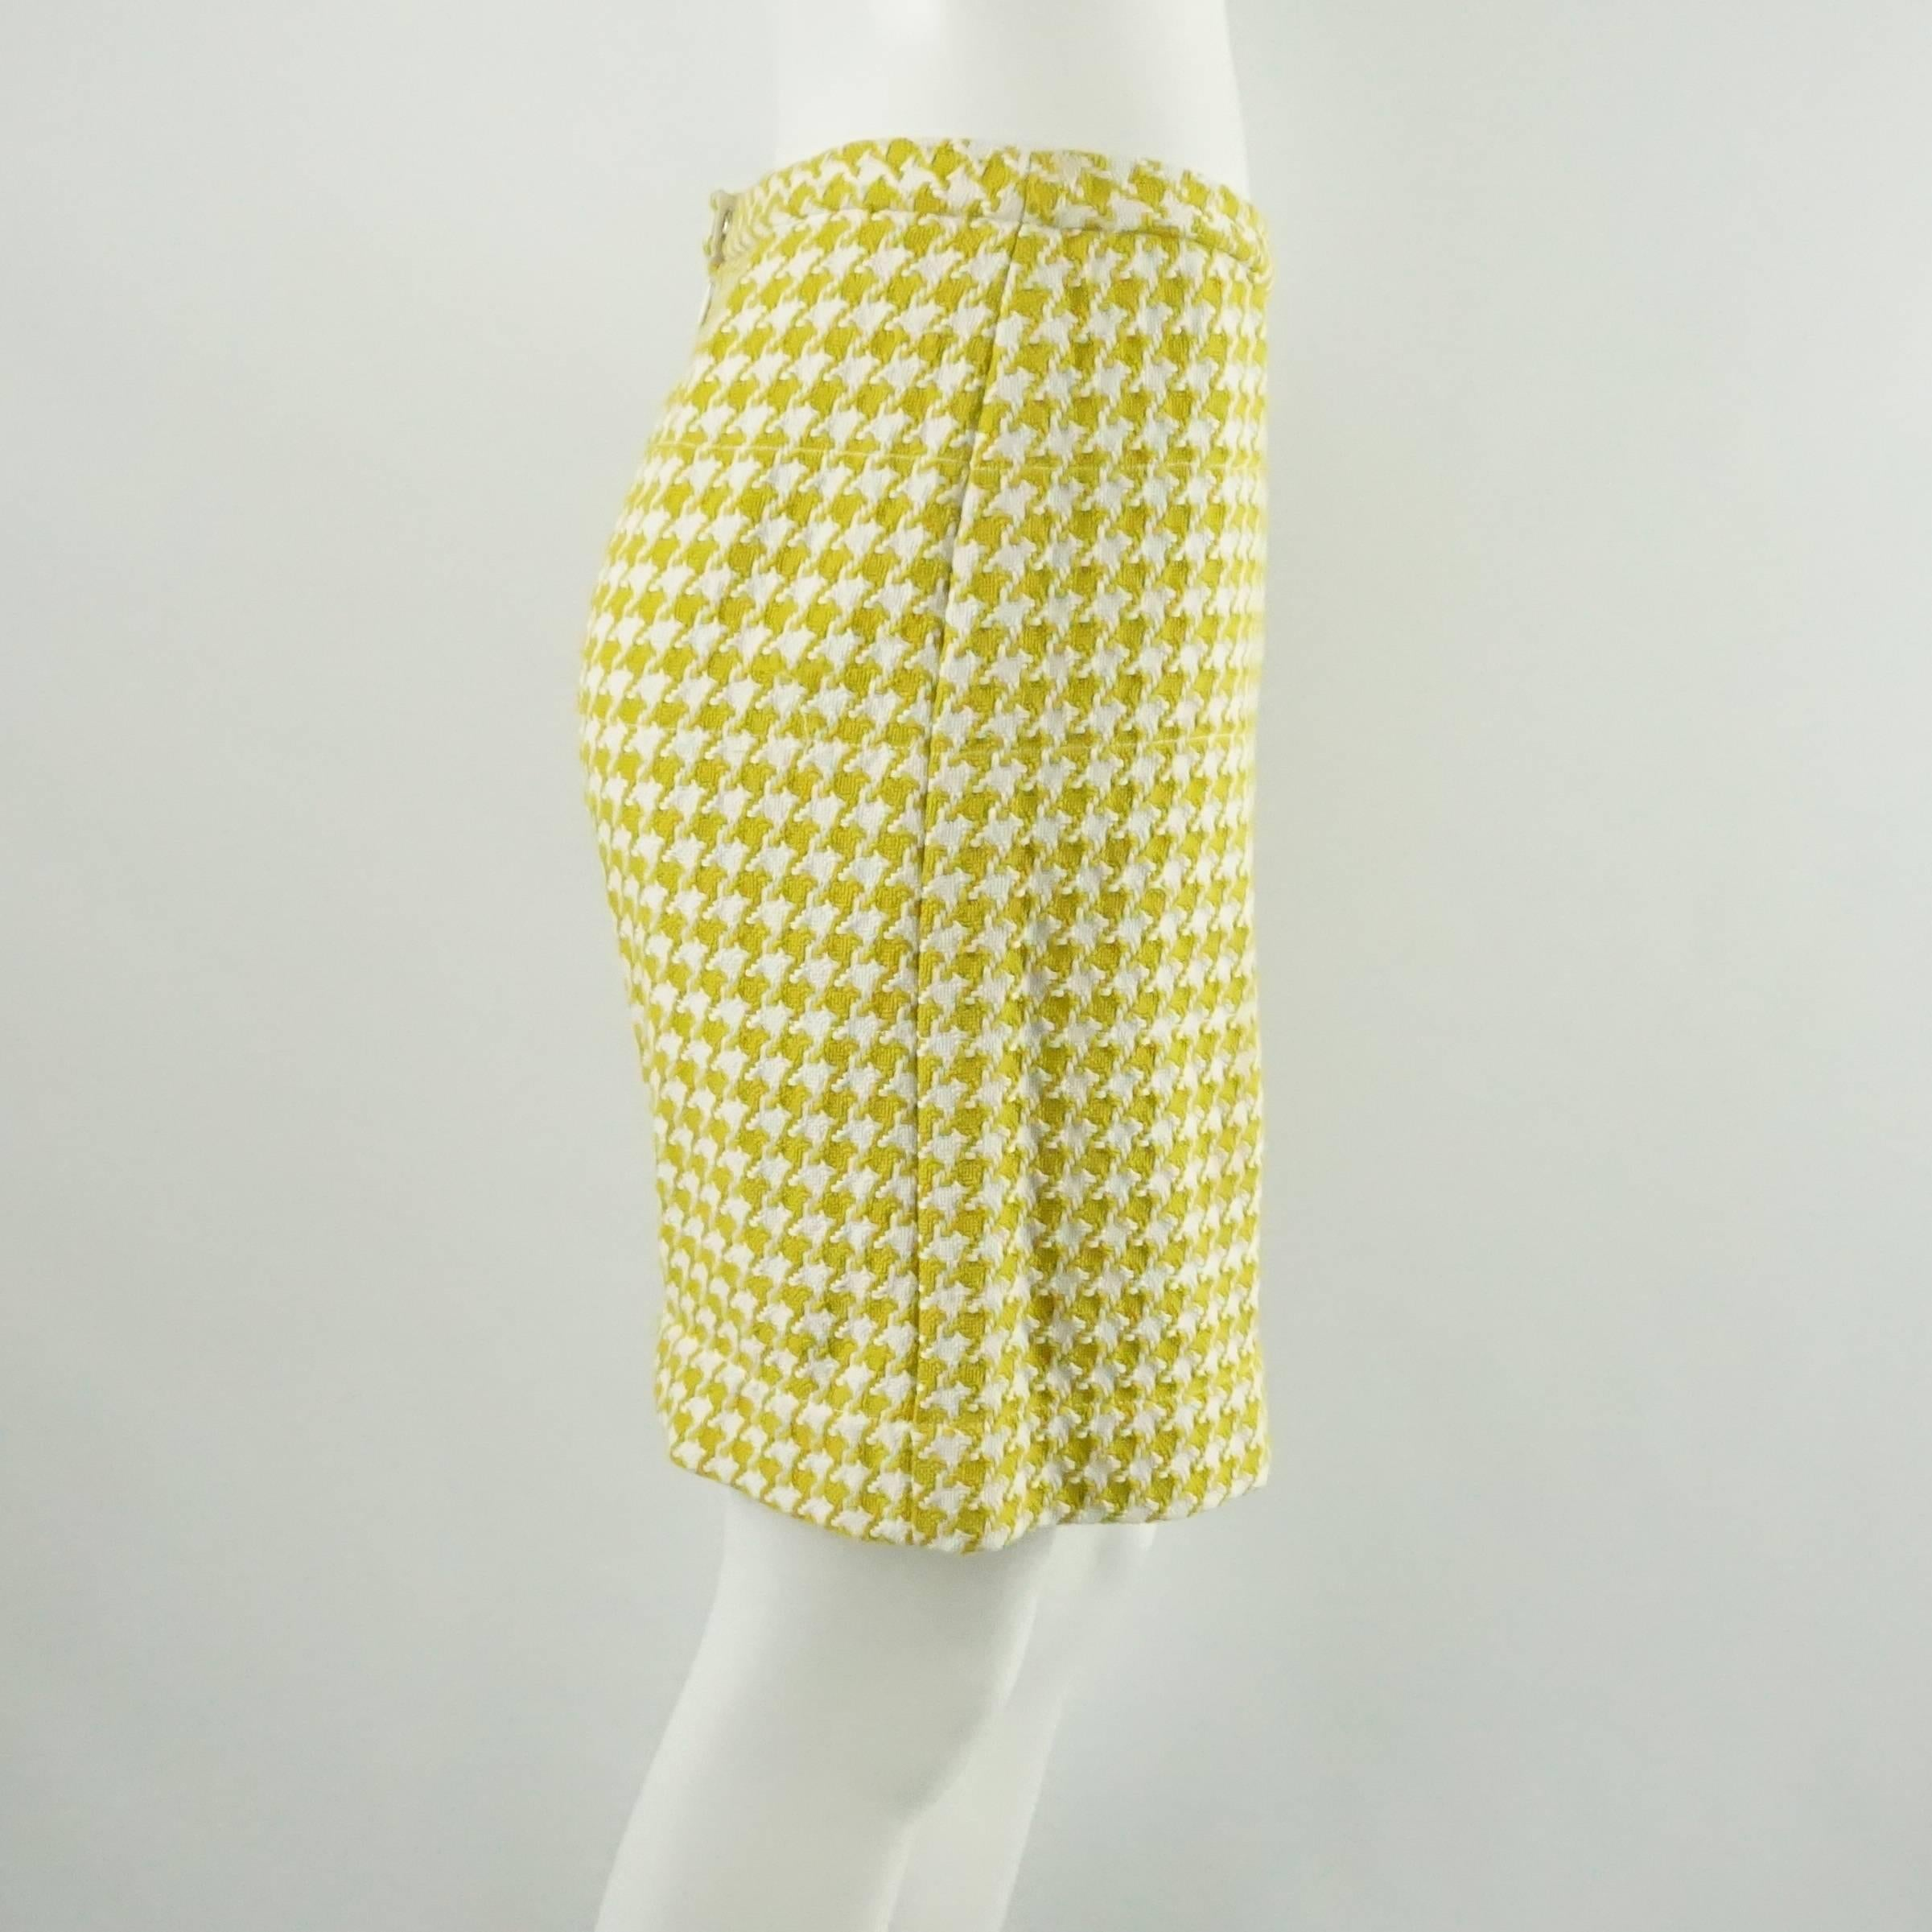 025e0cfc1a Dolce and Gabbana Yellow and White Houndstooth Skirt with Rhinestones - 38  For Sale at 1stdibs